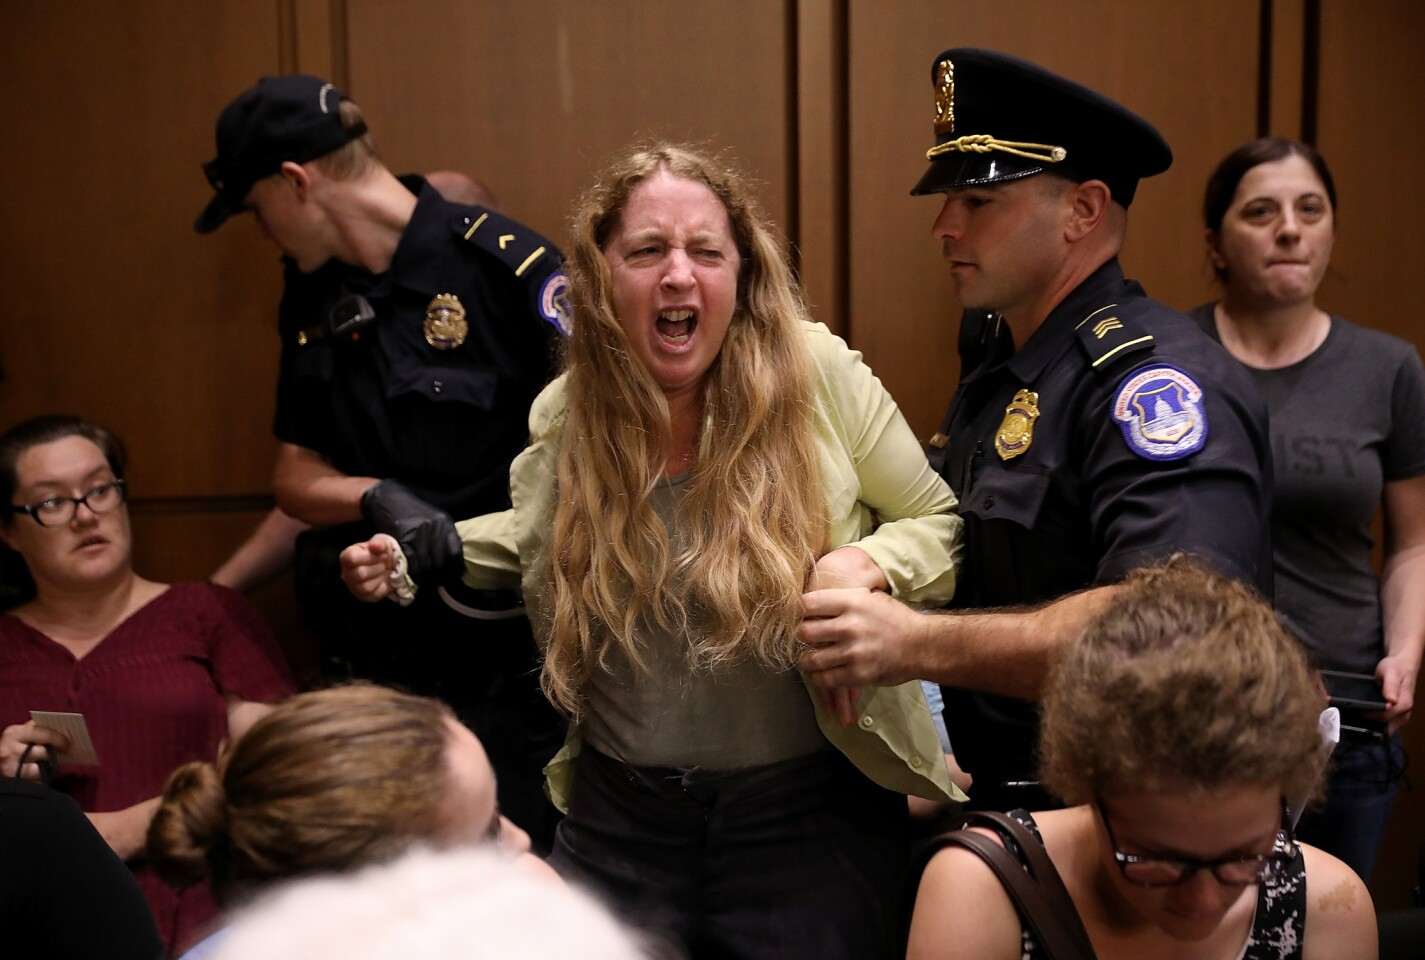 Protesters disrupt the confirmation hearing for Supreme Court nominee Judge Brett Kavanaugh before the Senate Judiciary Committee.